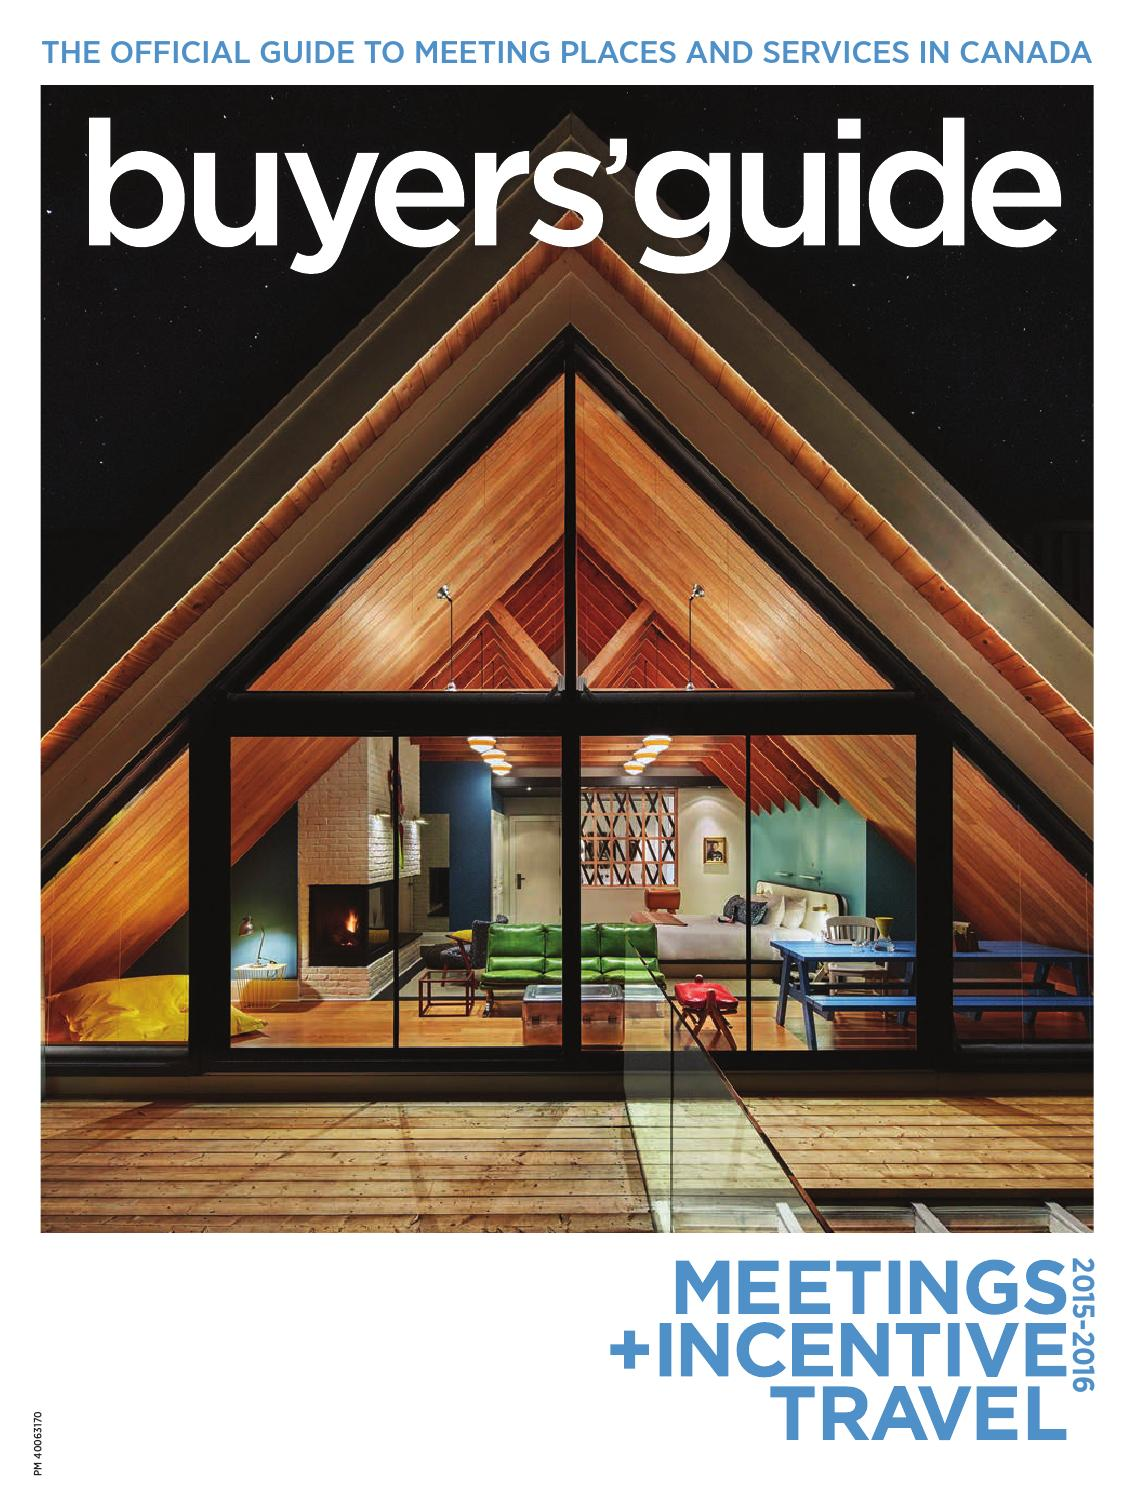 Meetings + Incentive Travel Buyers Guide 2015 by Annex-Newcom LP - issuu